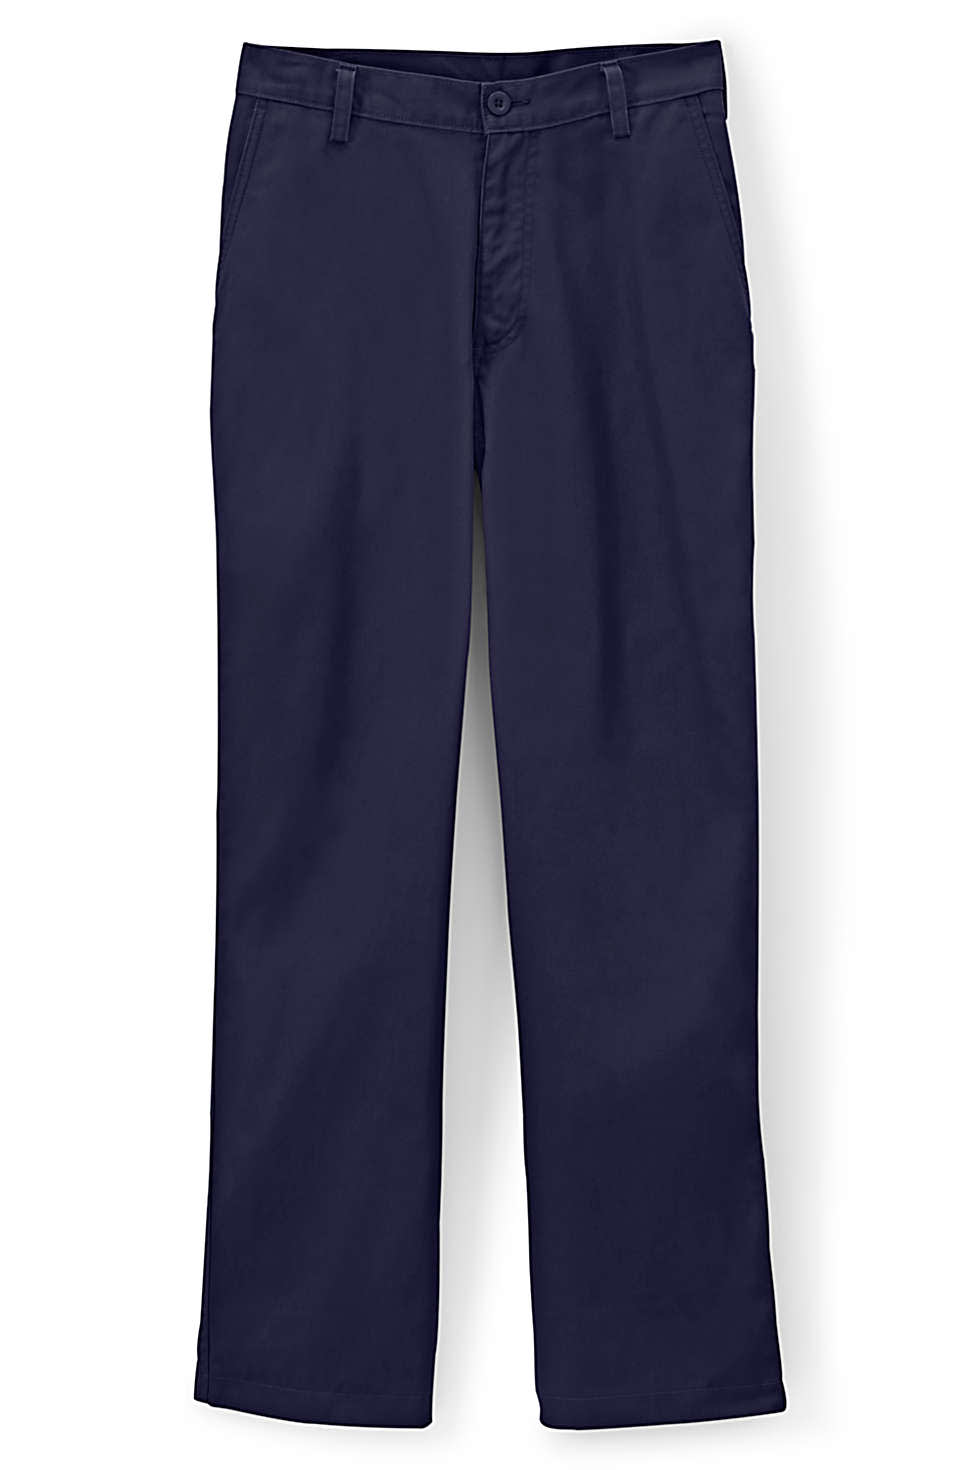 Lands' End Men's Basic Work Pants